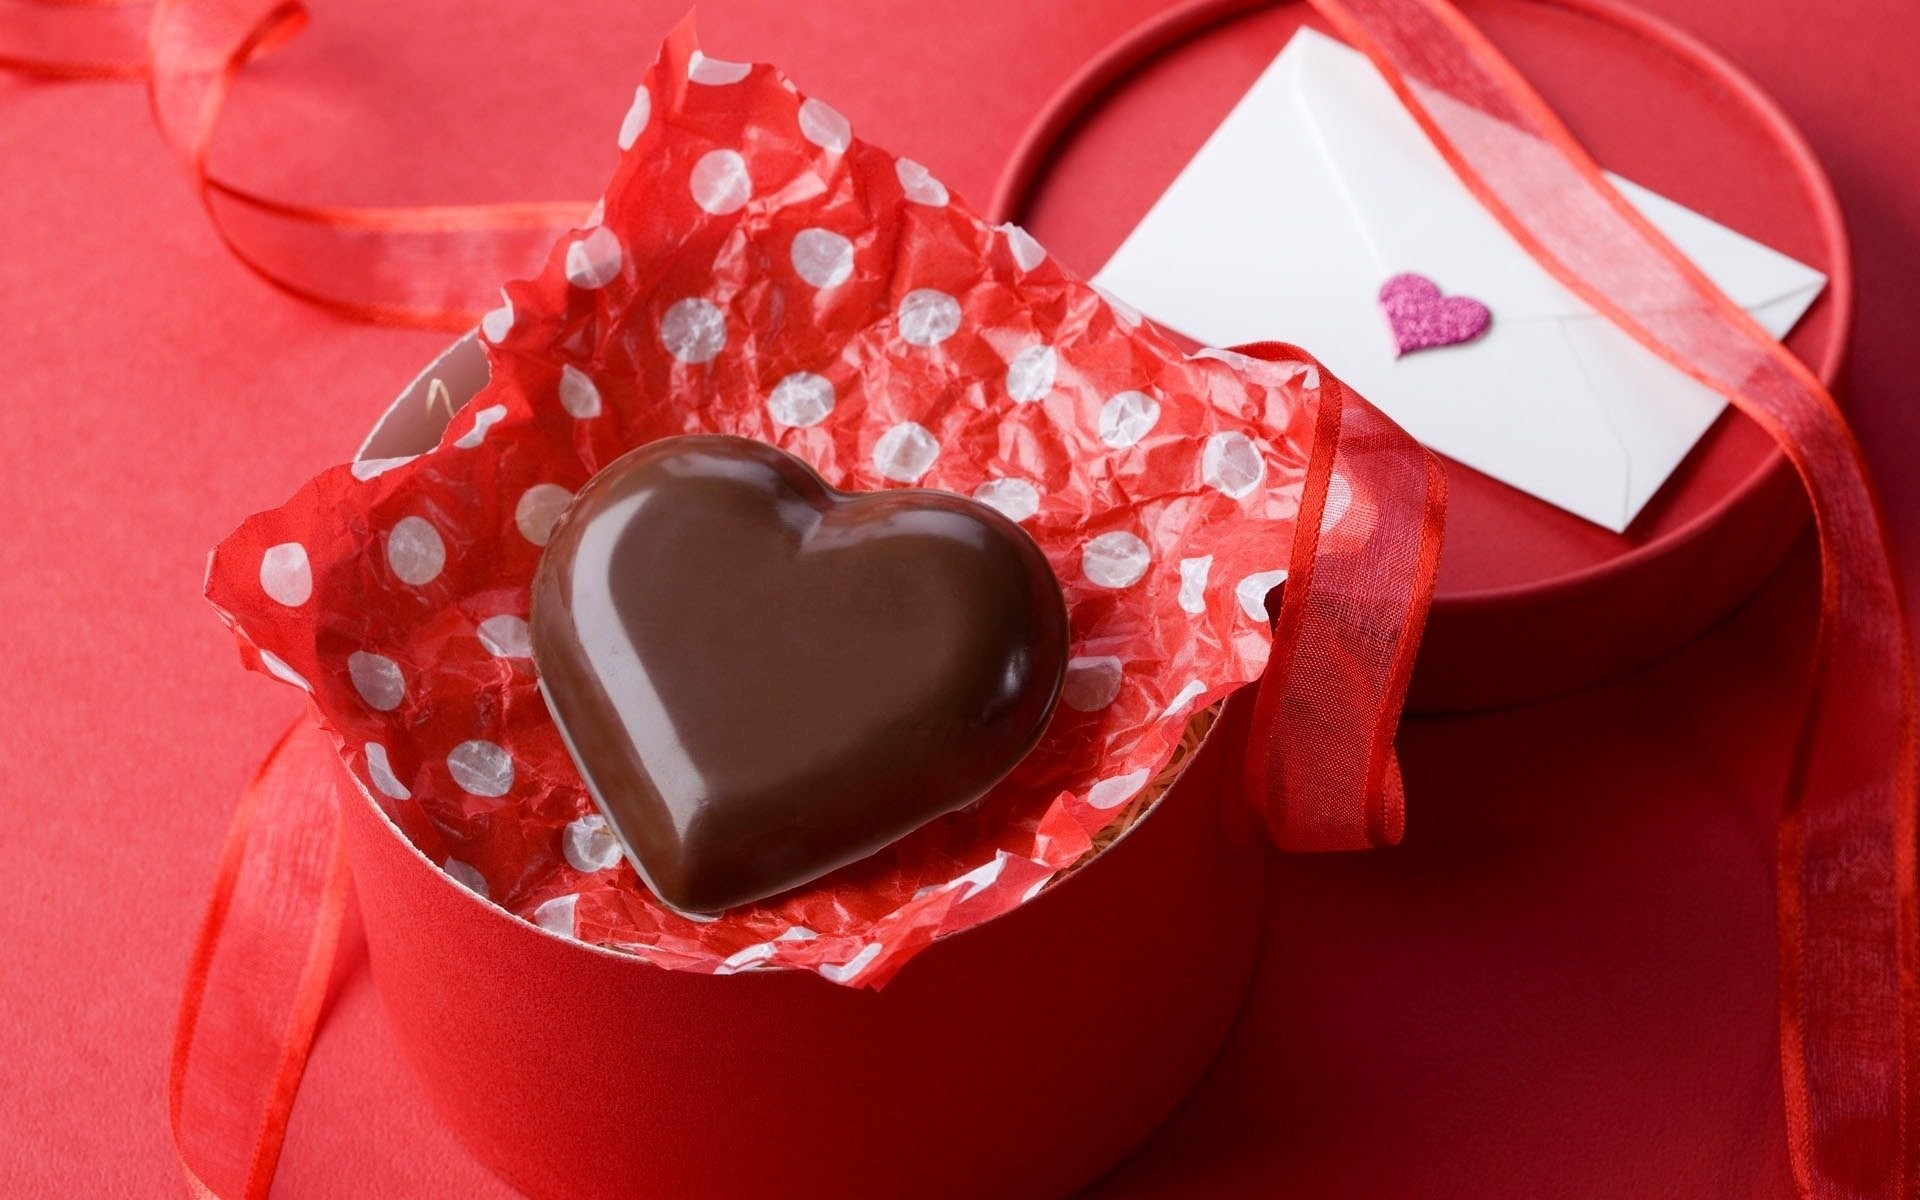 1920x1200 chocolate holiday i love you love red candy heart chocolate candy heart  holiday love